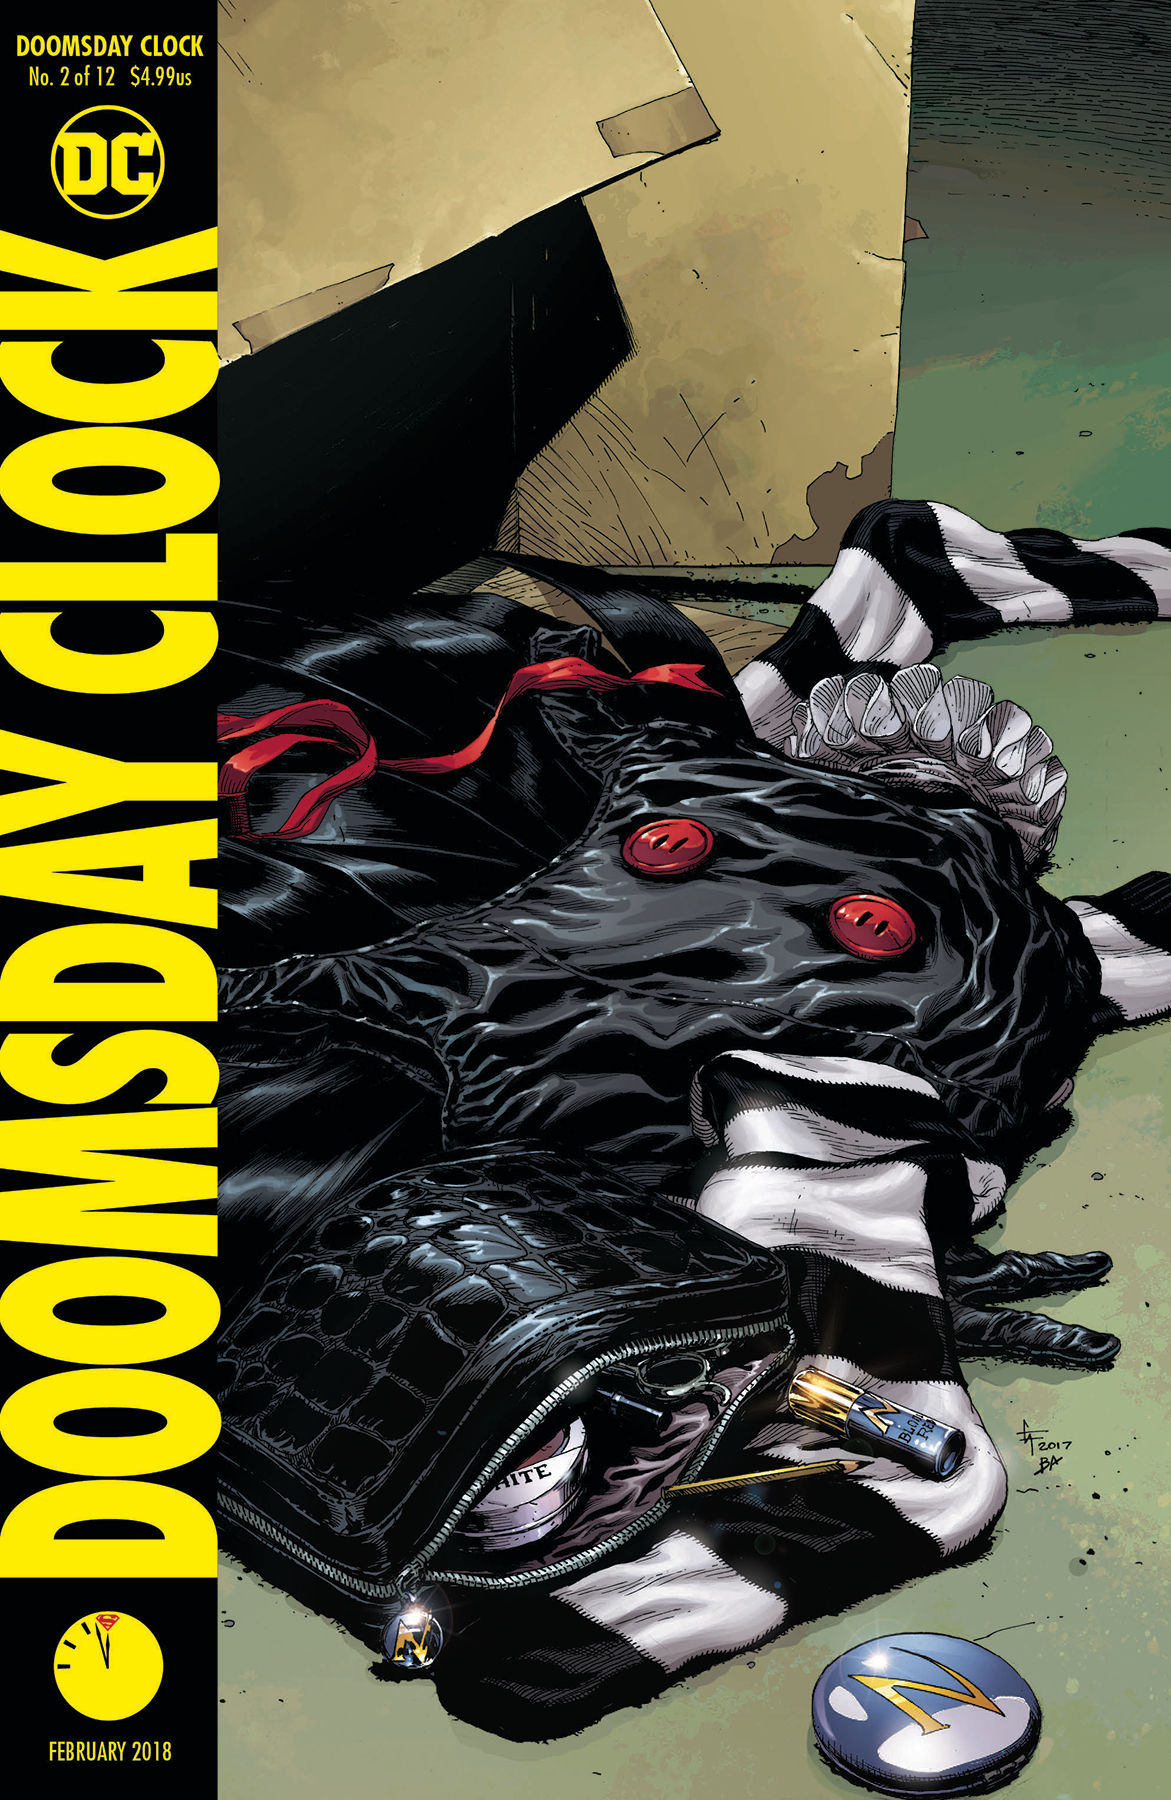 Doomsday Clock #2